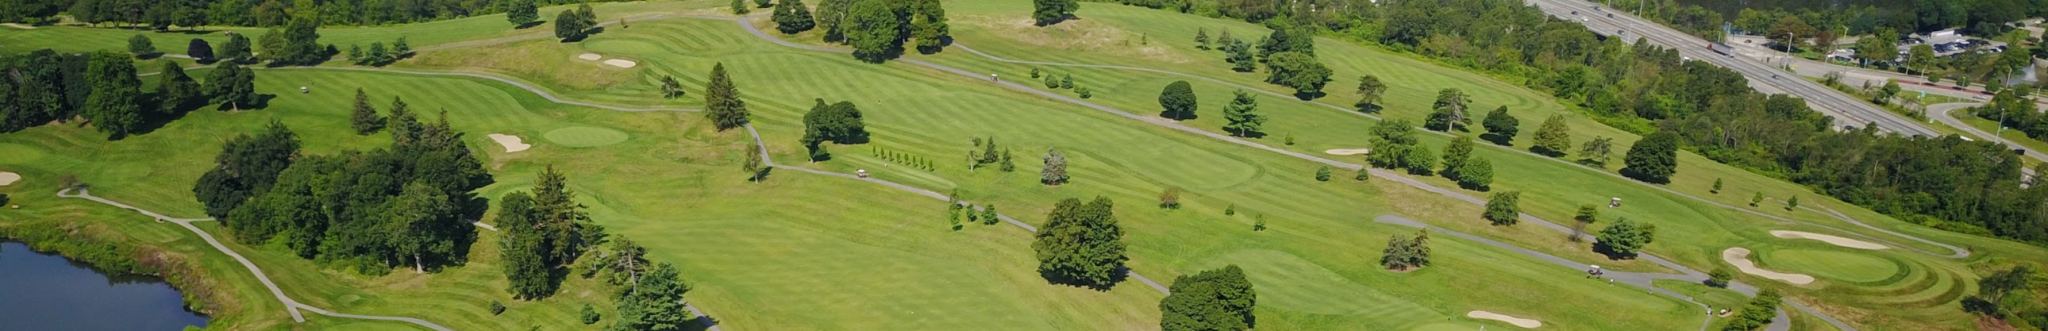 aerial photography from Involve Aerial Media drone services